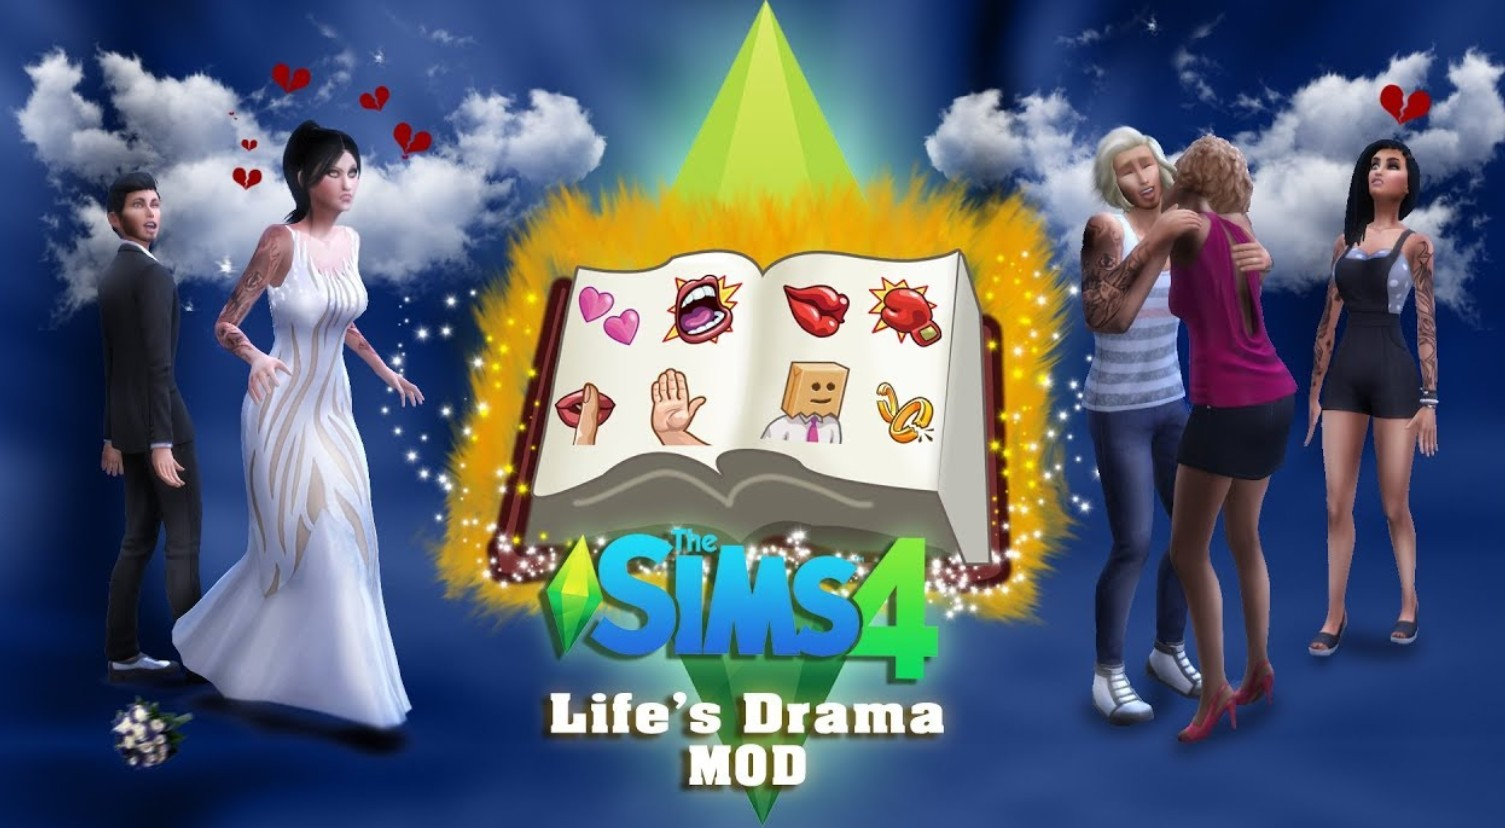 Real life is full of drama, now your sim's life can be too.